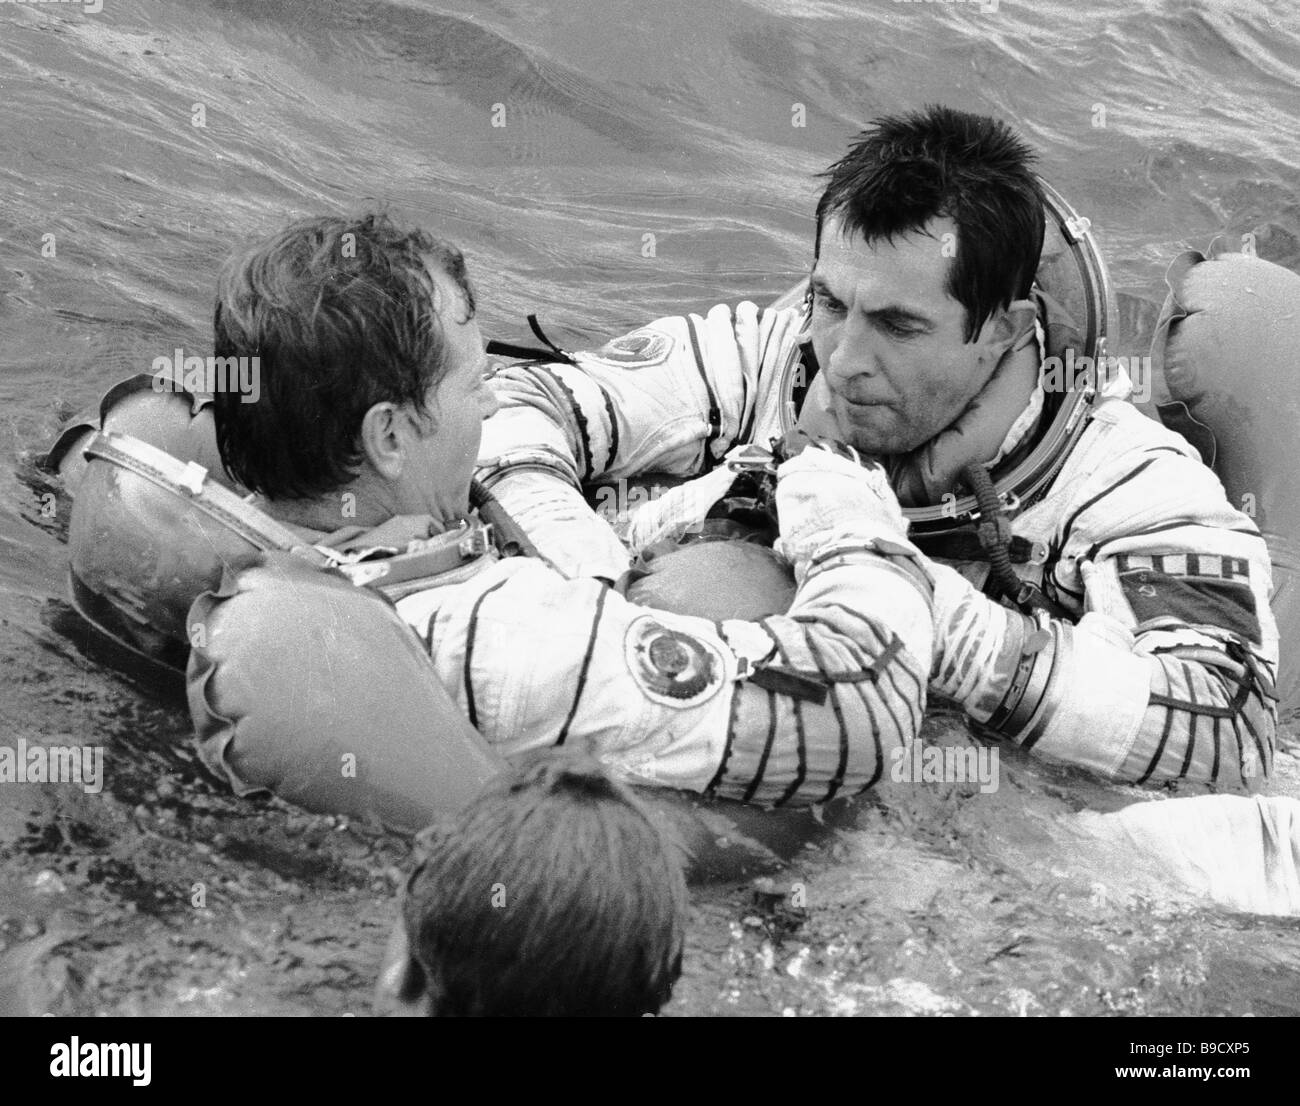 Französisch Training Soviet Cosmonauts Training Stockfotos And Soviet Cosmonauts